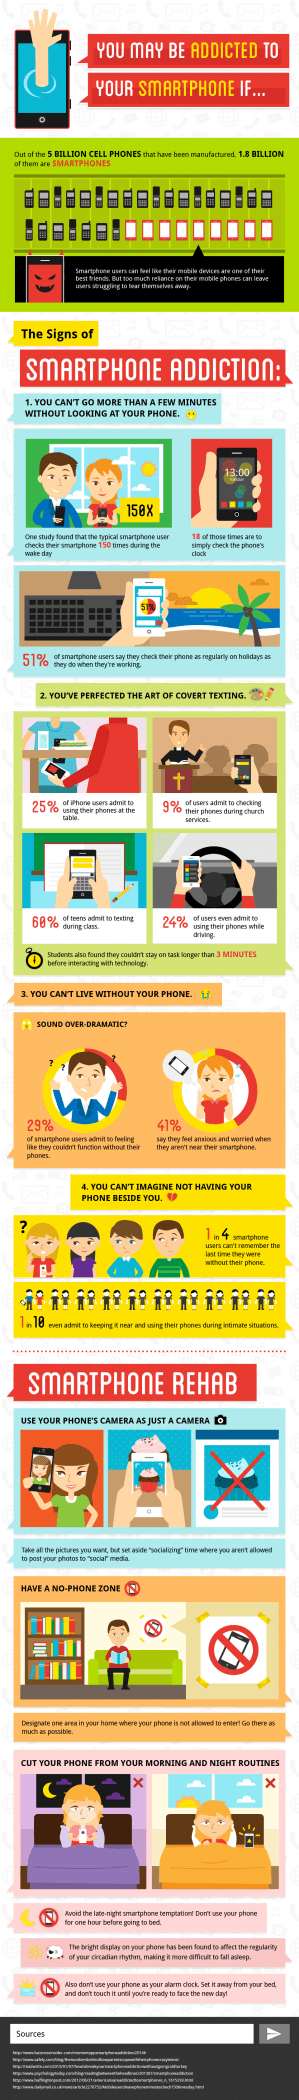 Tips to Recognize if You Are Addicted to Smartphones | Tipsographic